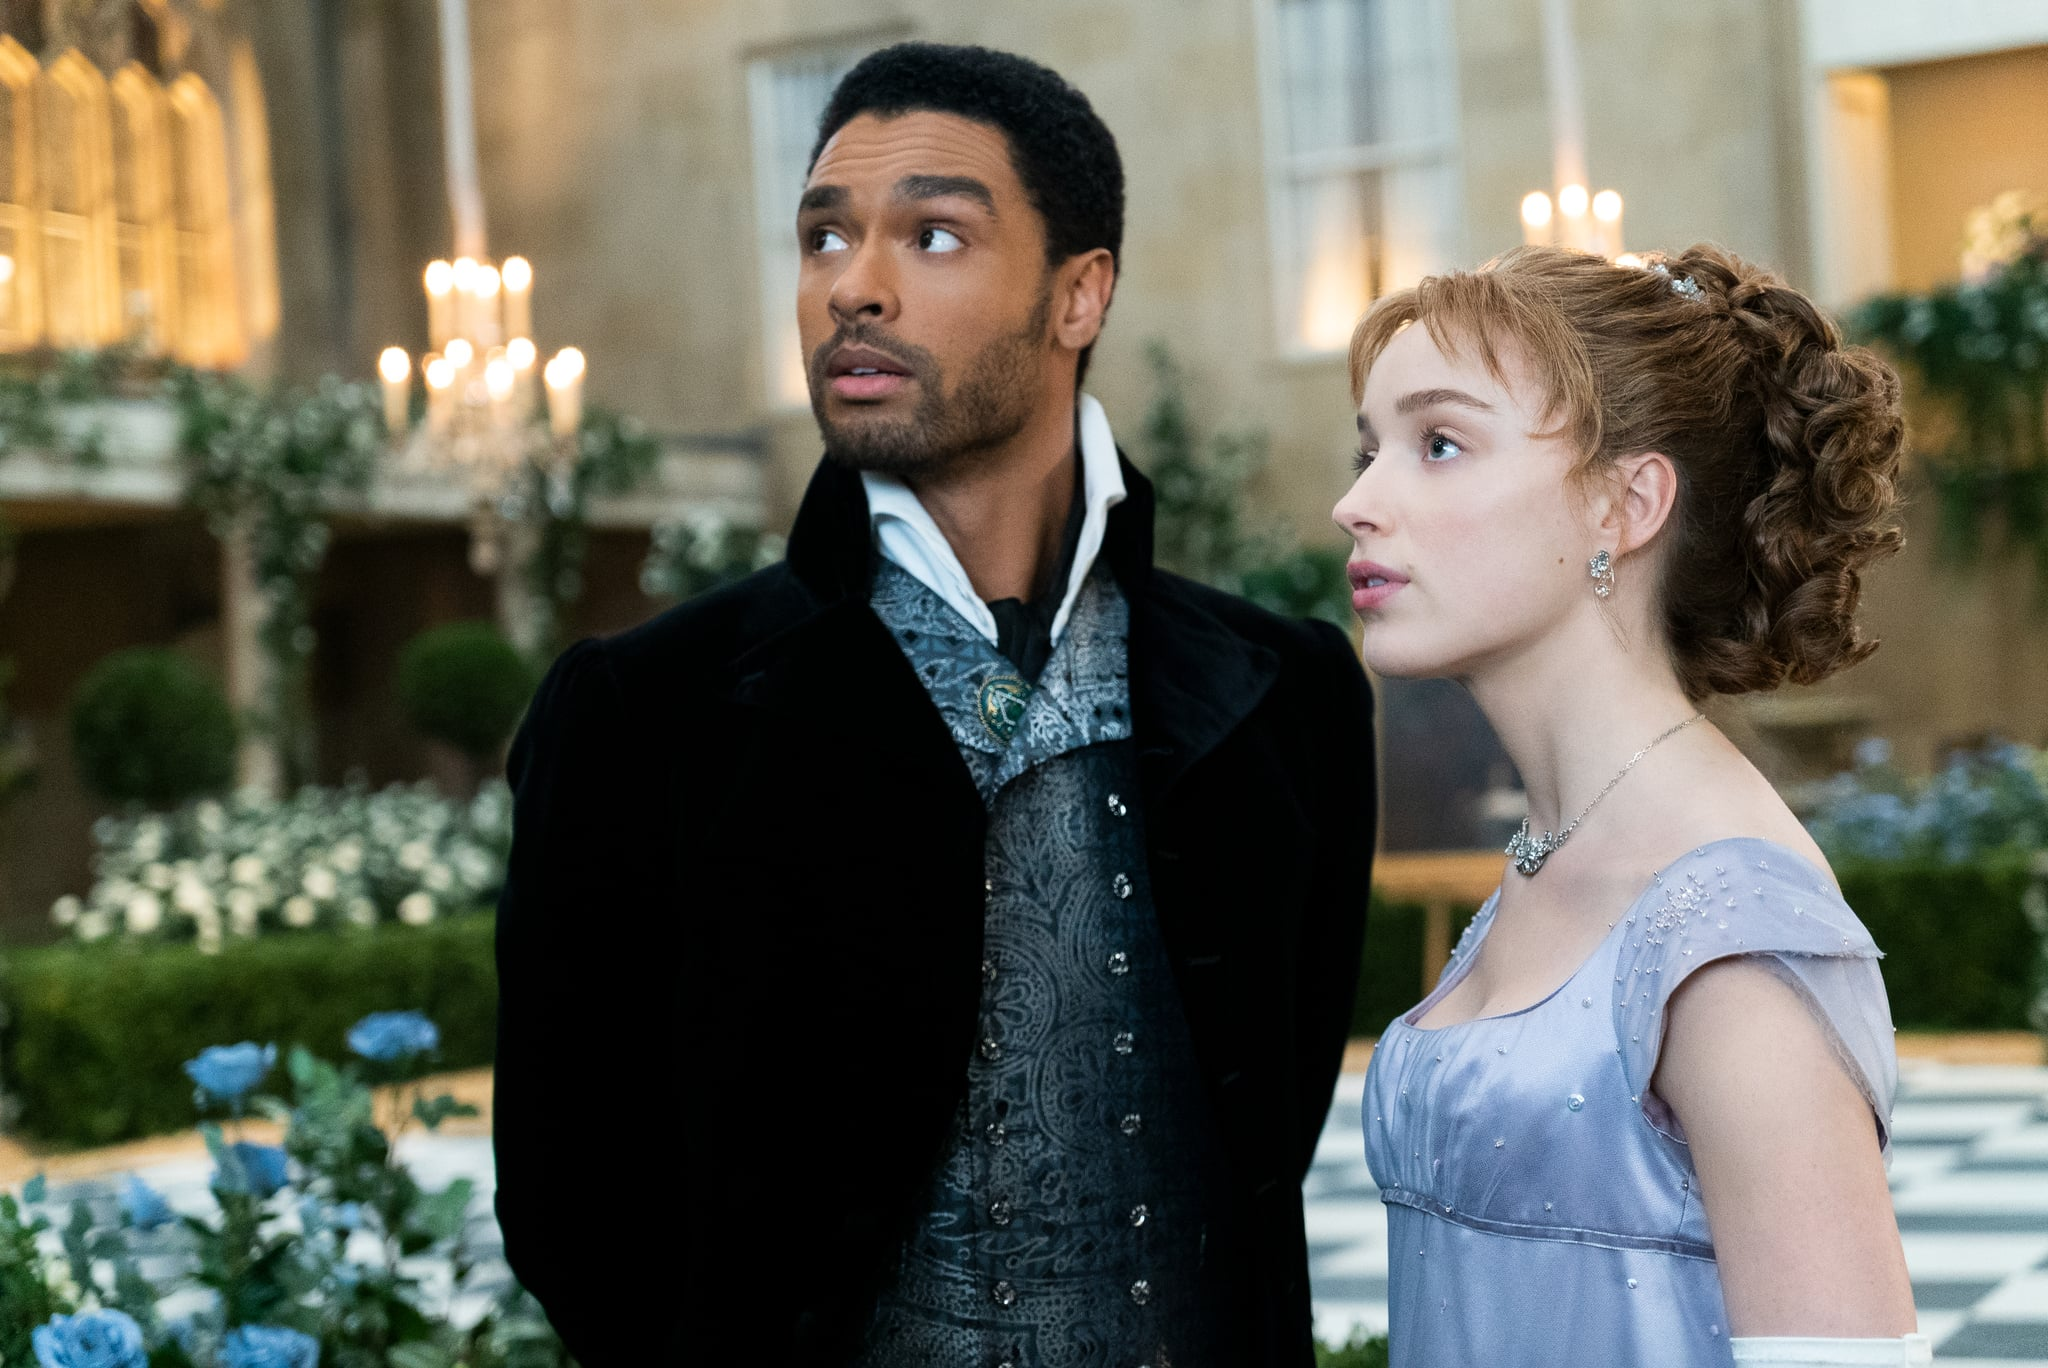 BRIDGERTON (L to R) REG-JEAN PAGE as SIMON BASSET and PHOEBE DYNEVOR as DAPHNE BRIDGERTON in episode 108 of BRIDGERTON Cr. LIAM DANIEL/NETFLIX  2020